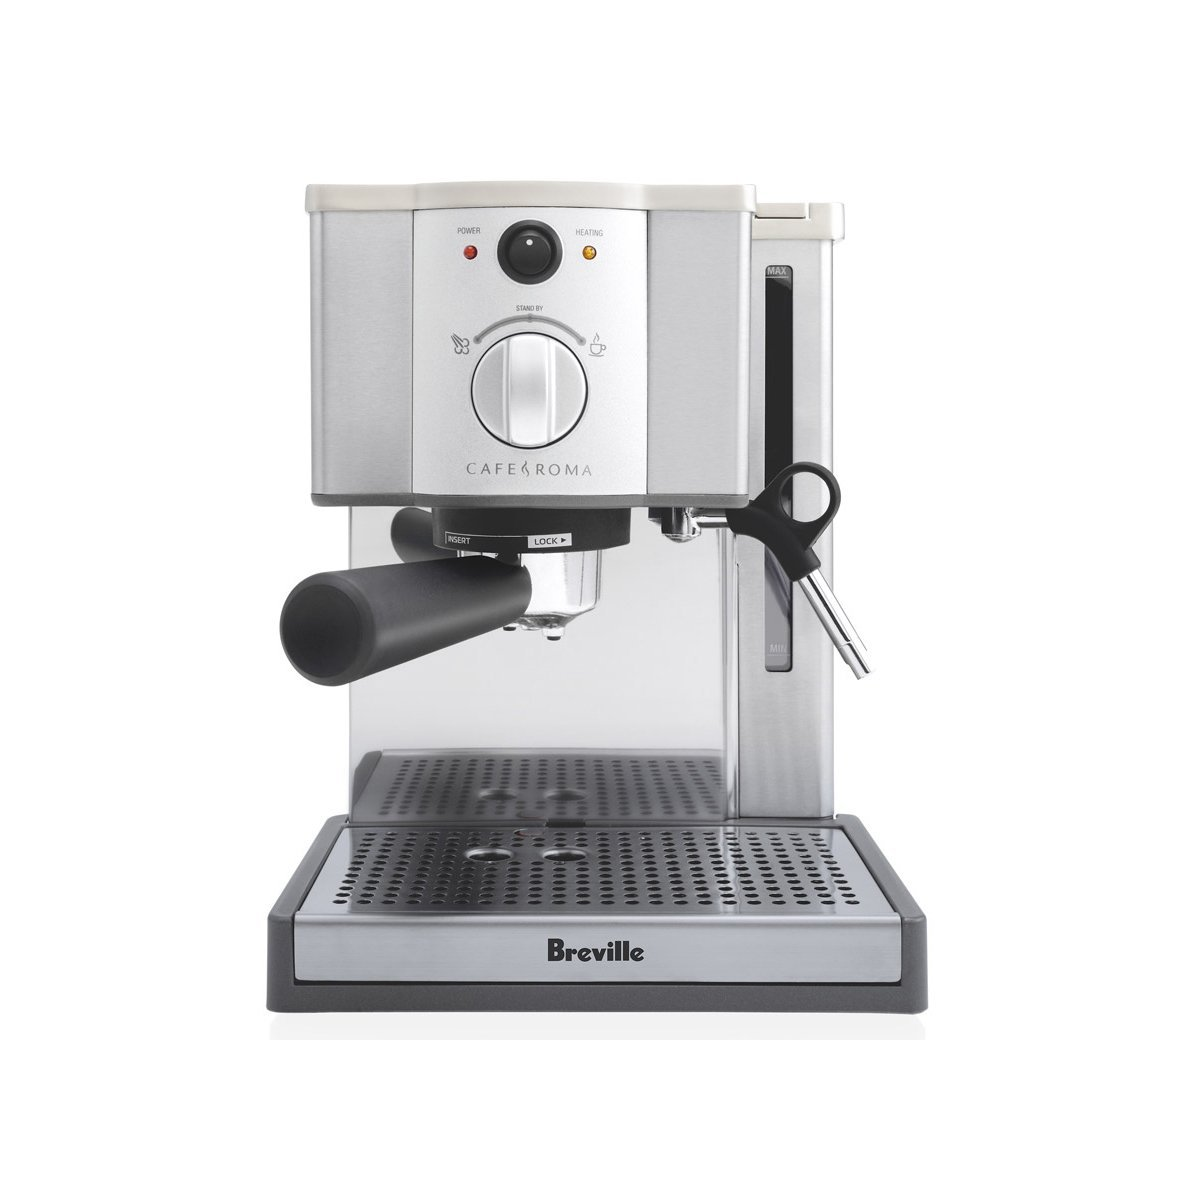 Breville ESP8XL Cafe Roma Stainless Espresso Maker Book Cover